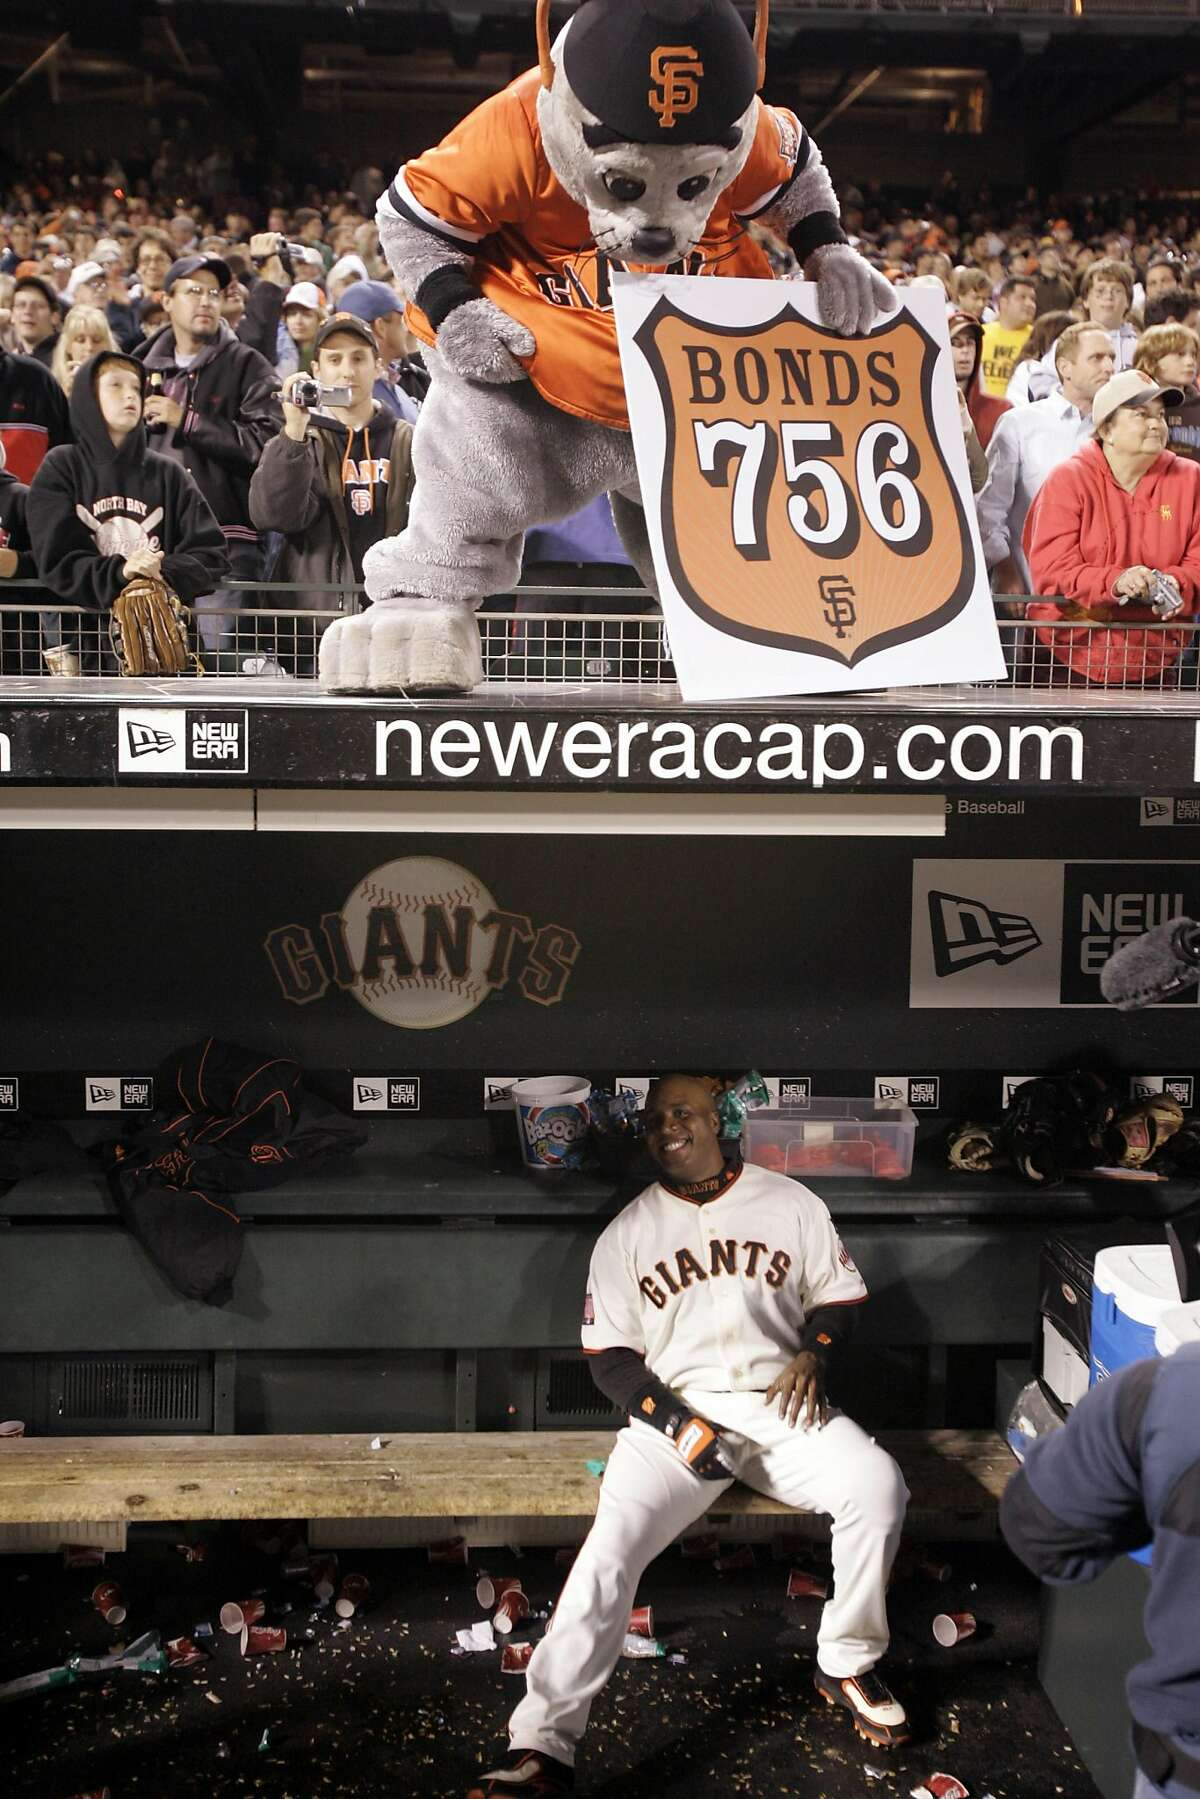 GIANTS07_df_008.JPG Lou Seal looks into the dugout after Barry Bonds hits home run number 756 in the bottom of the fifth inning. Washington Nationals play the San Francisco Giants at AT&T Park in San Francisco, CA, on Tuesday, August 07, 2007. Deanne Fitzmaurice / The Chronicle ** (cq) Ran on: 08-09-2007 Historic swing: Barry Bonds follows through on the swing that sent his 756th home run soaring 435 feet into the center-field bleachers. On contact, there was no question the ball would reach the stands. Bonds knew it and stayed in the batters box, raising both arms as he took his place atop the all-time home run list.